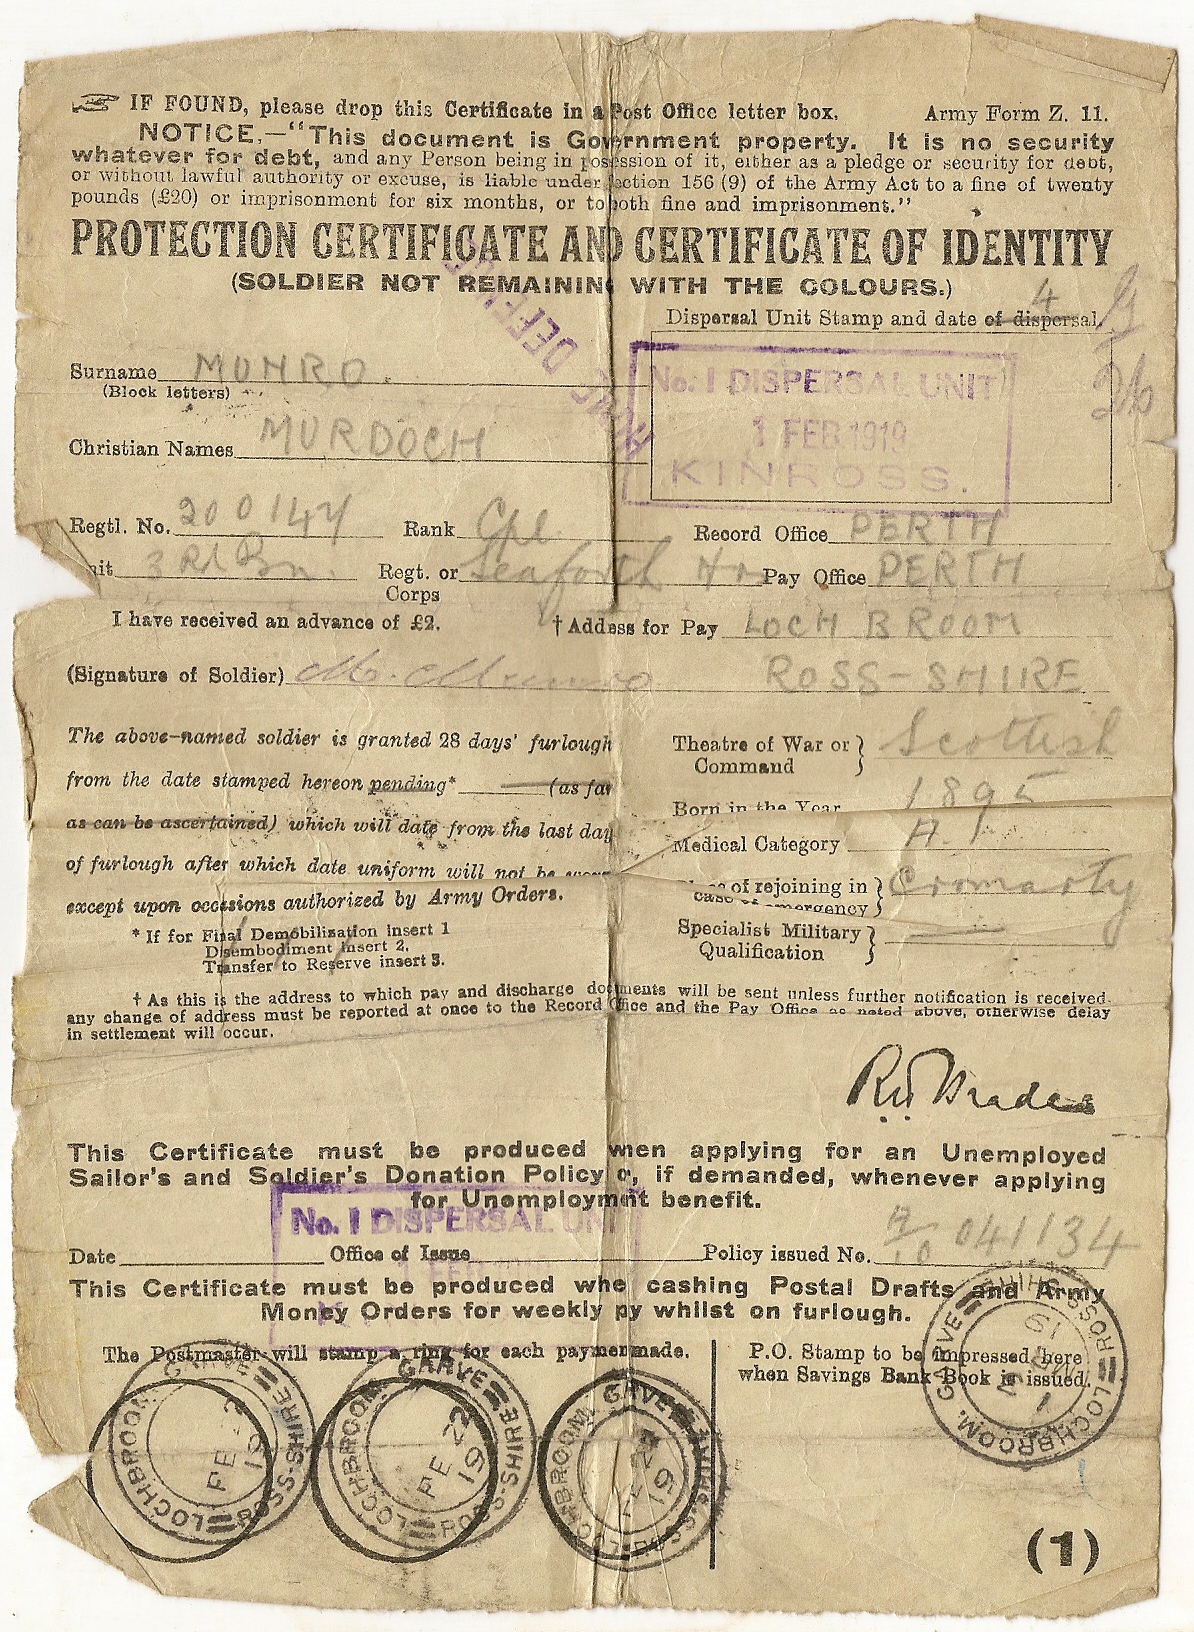 image of Protection Certificate and Certificate of Identity